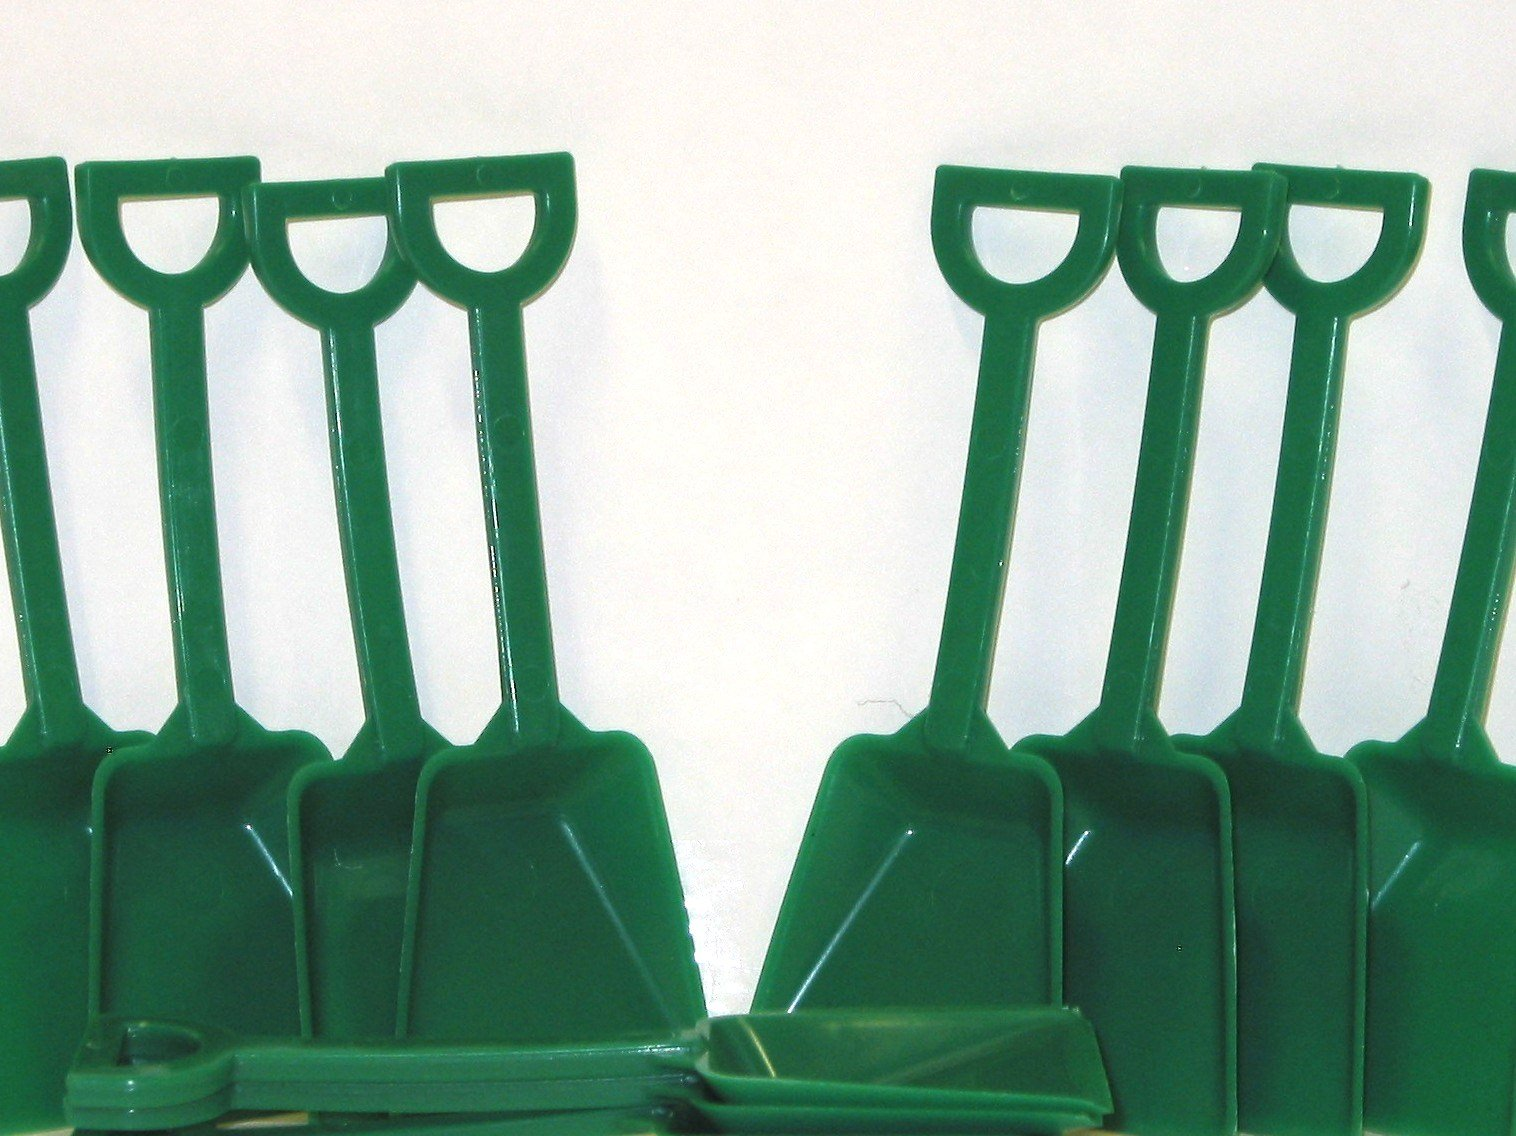 Small Green Toy Plastic Shovels Wholesale Lot, 7 Inches Tall, Pack 500